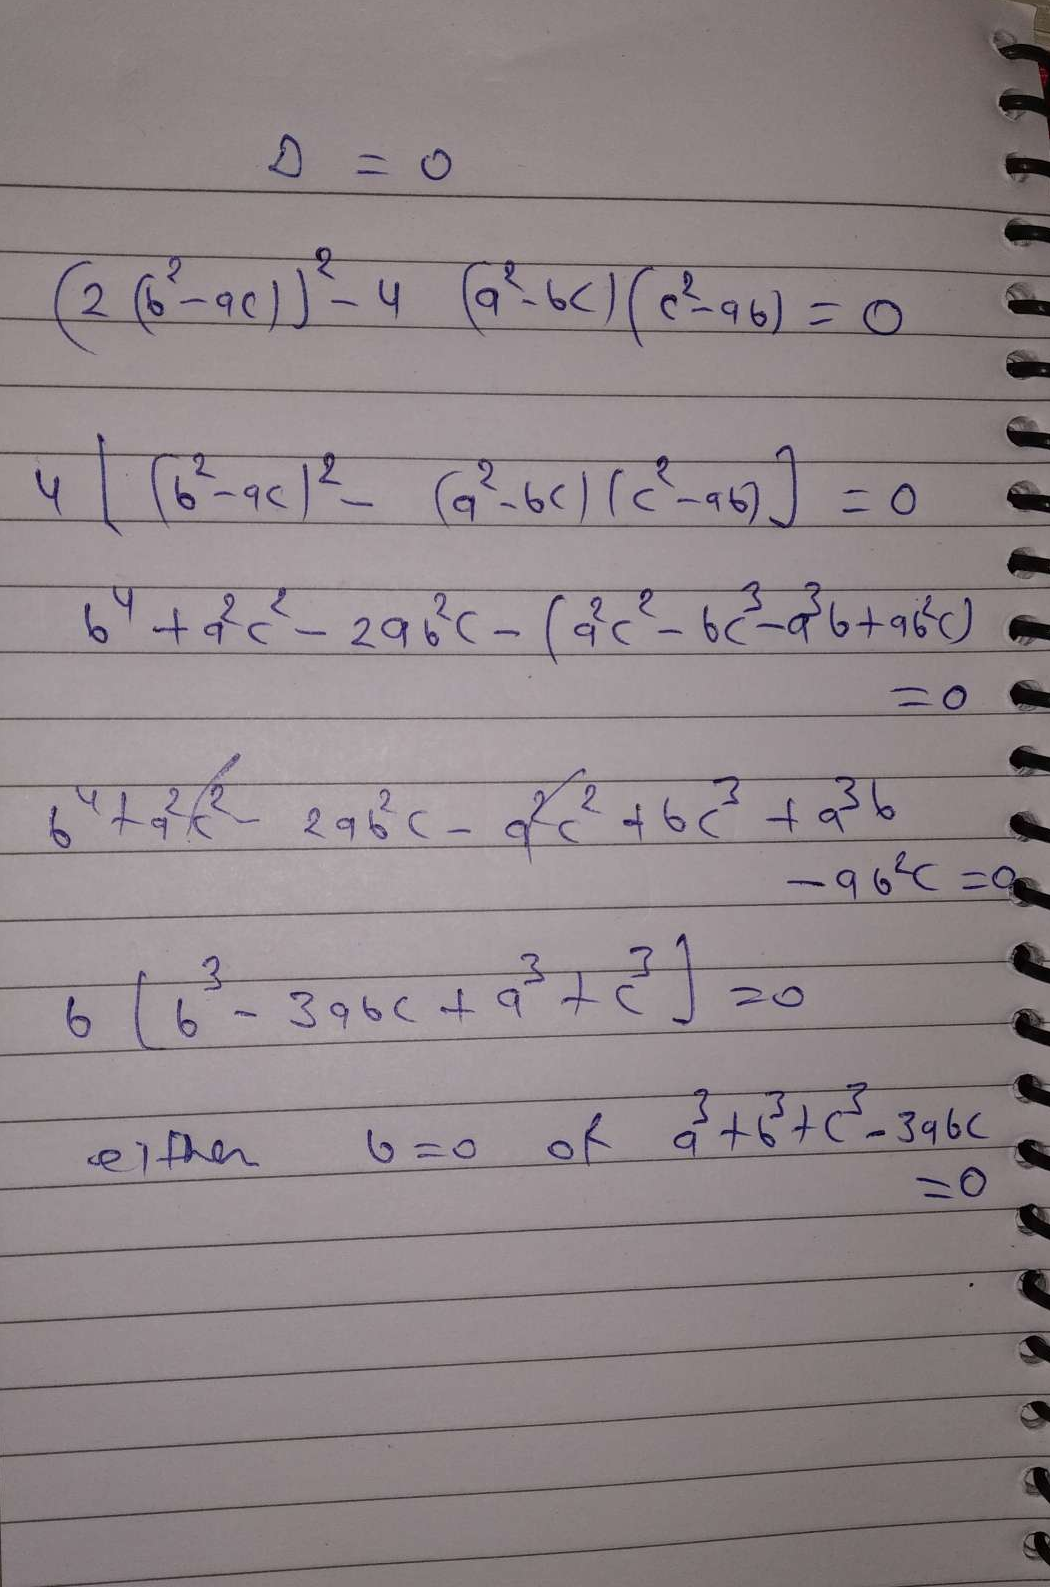 Show that if roots of equation (a^2−bc)x^2+2(b^2−ac)x+c^2−ab=0 are equal, then either b=0 or a^3+b^3+c^3=3abc